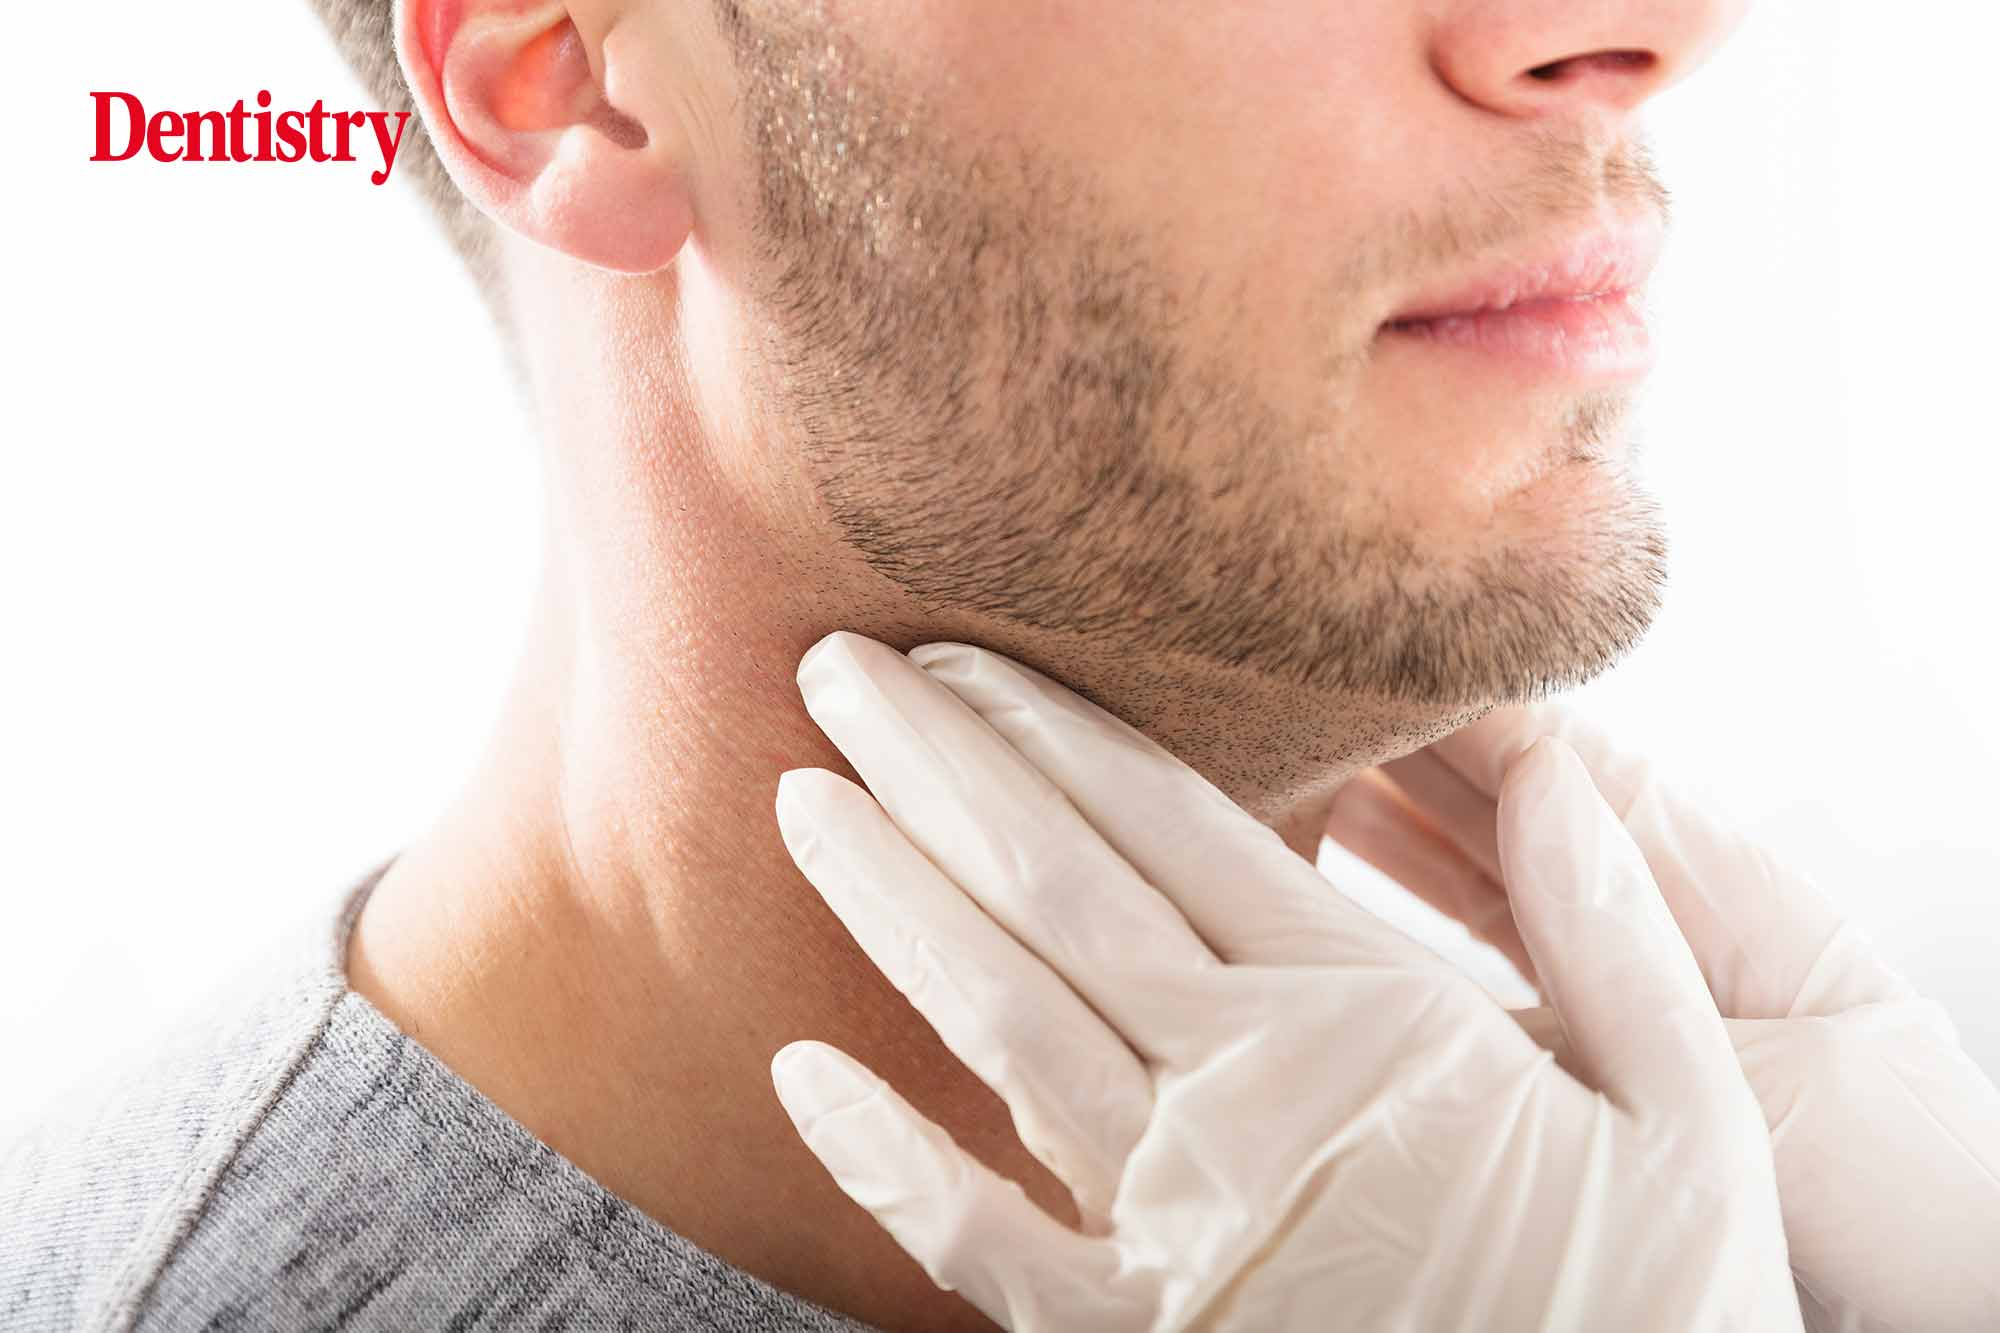 Up to half of patients who suffer from head and neck cancer will experience tumour recurrence or new tumours